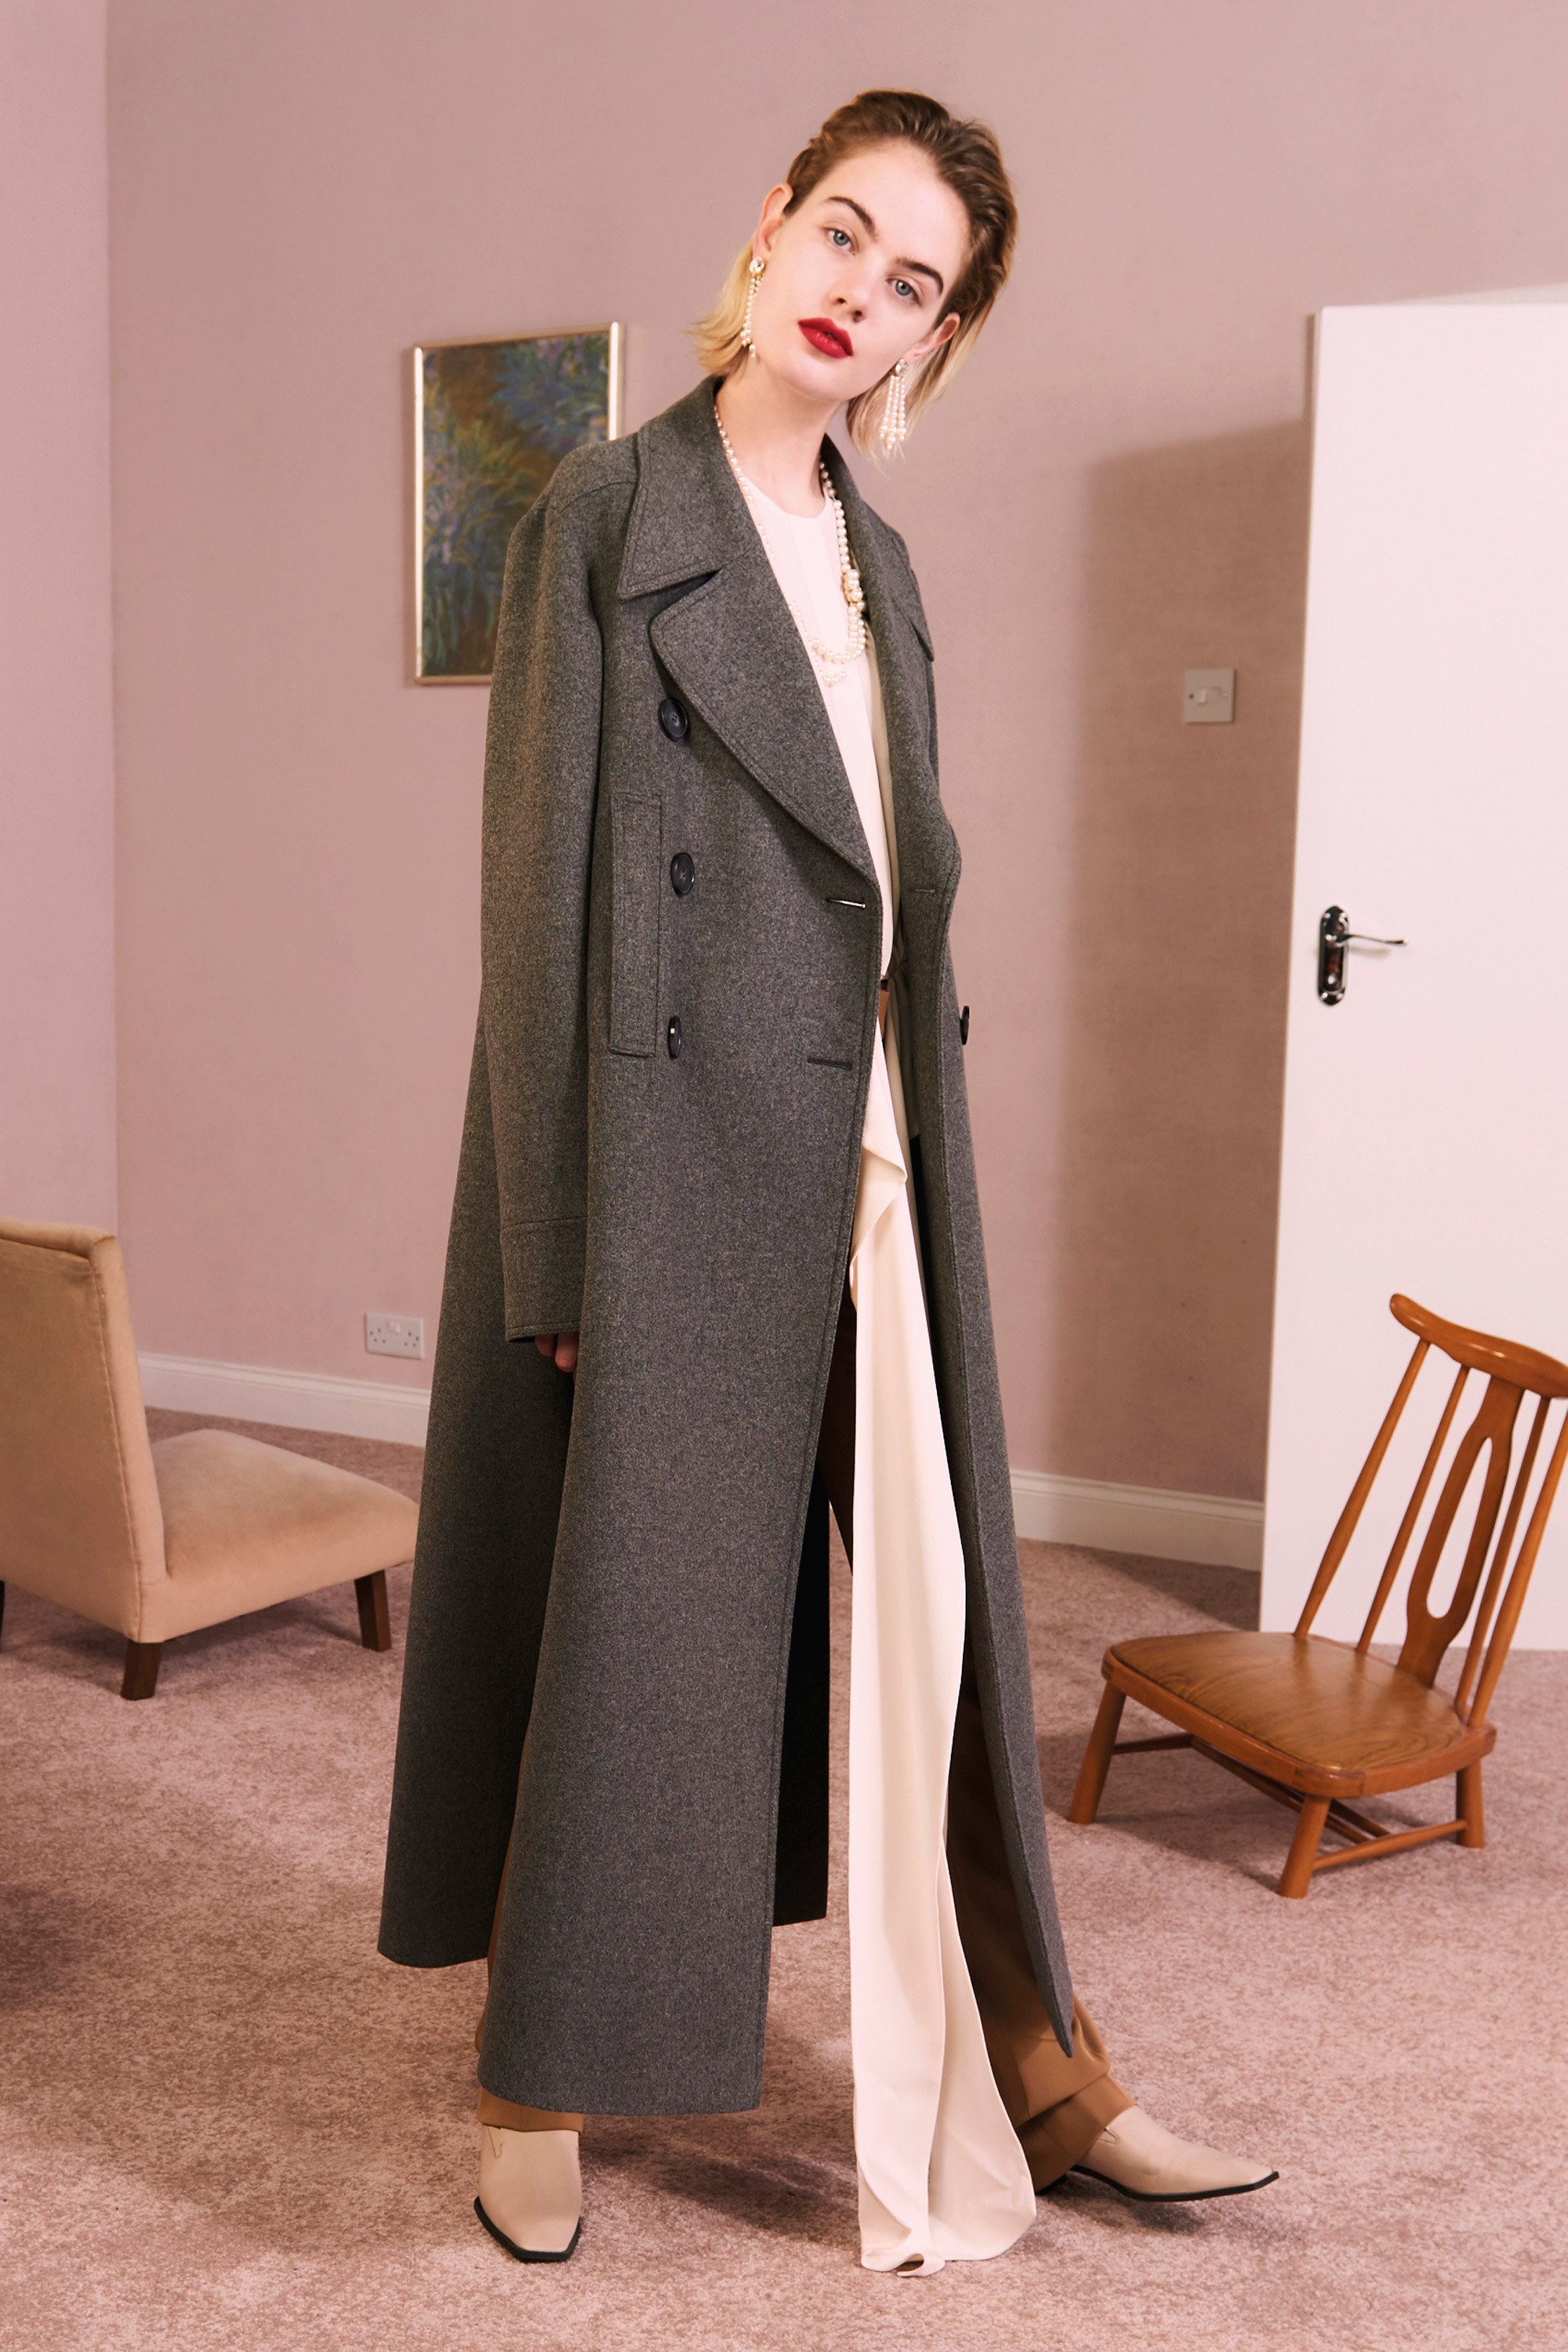 23-stella-mccartney-pre-fall-2017.jpg